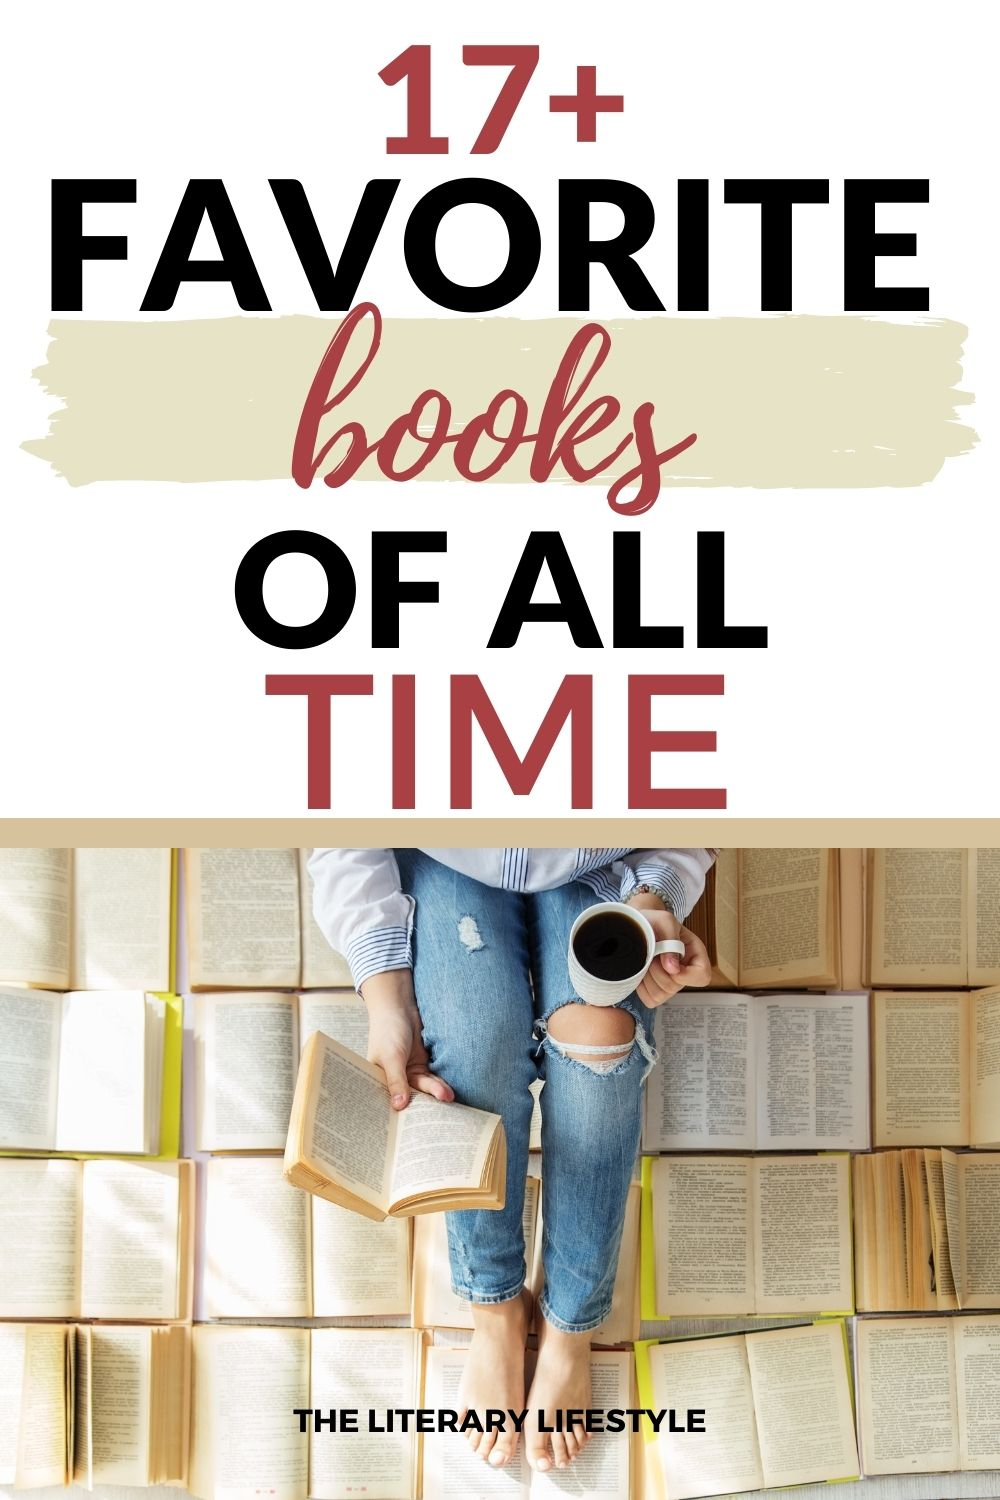 favorite books of all time